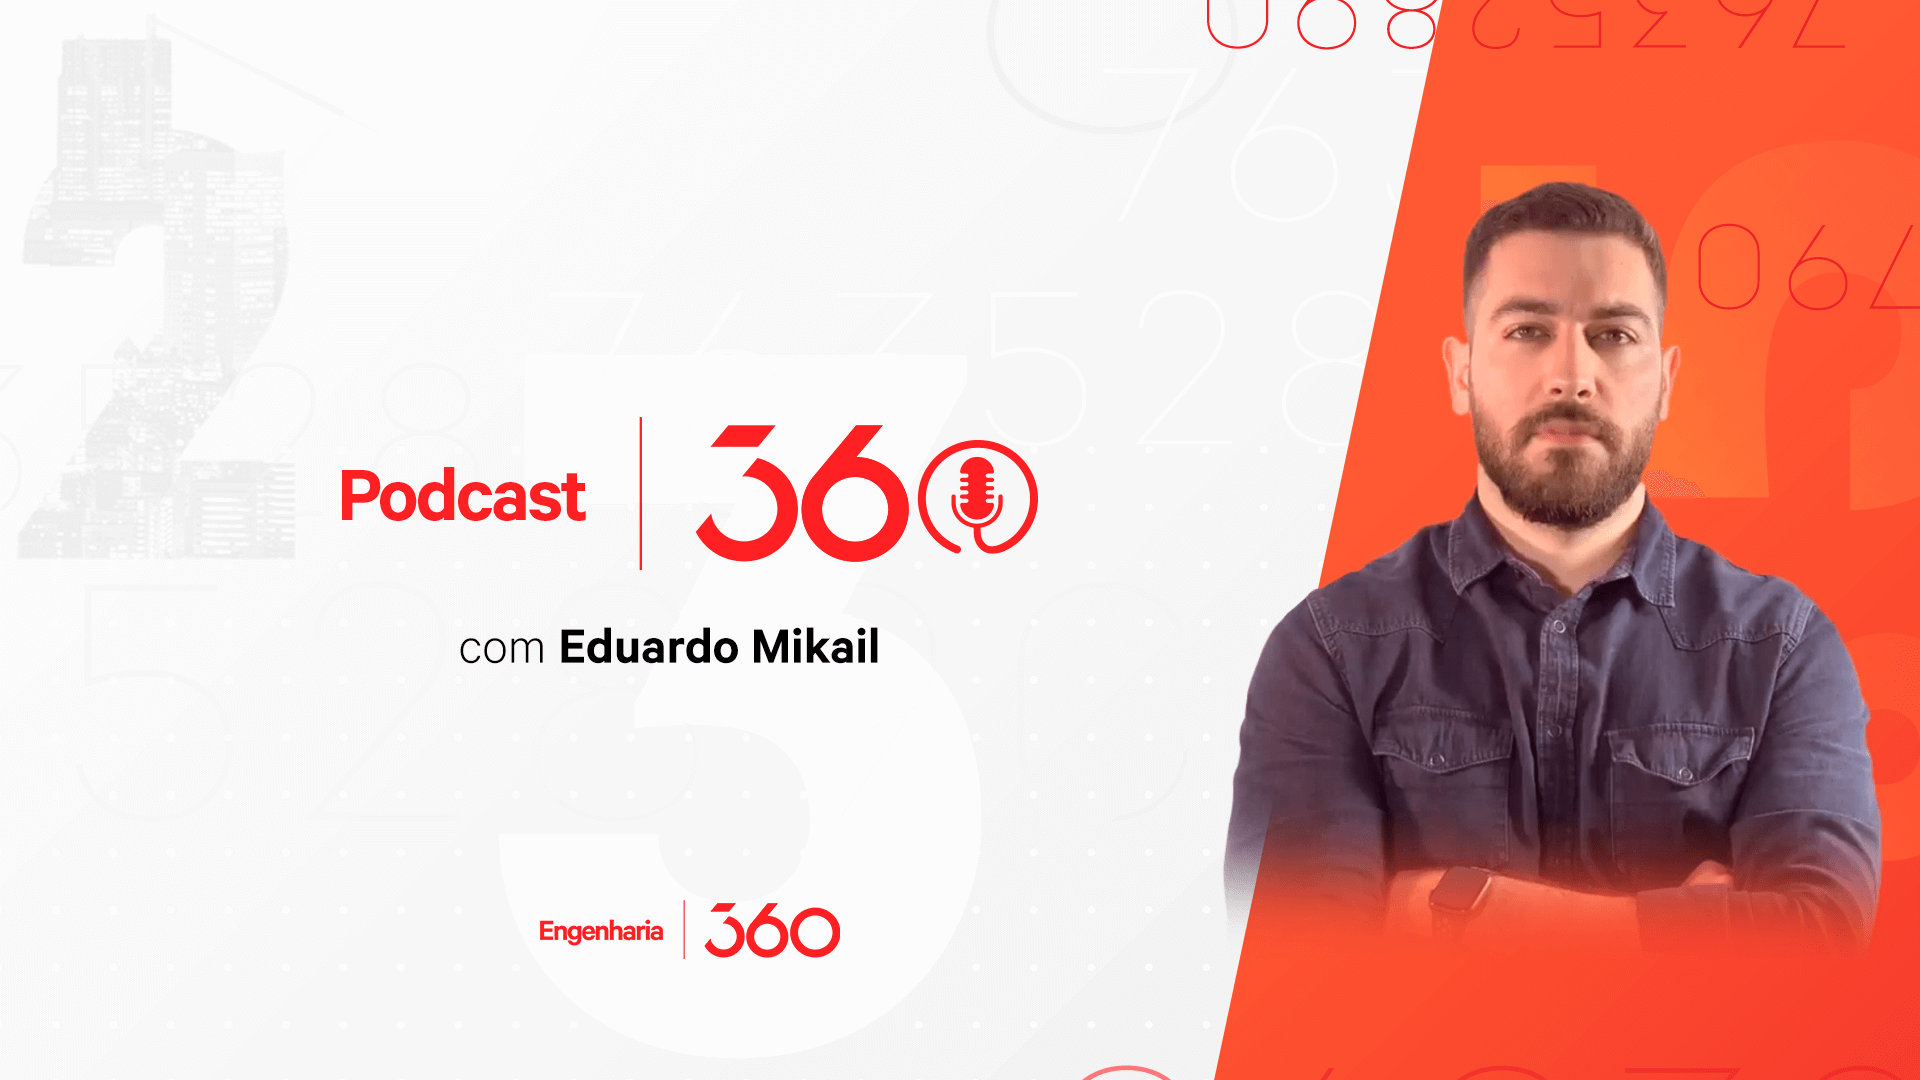 Podcast 360, o podcast do Engenharia 360 está no ar!